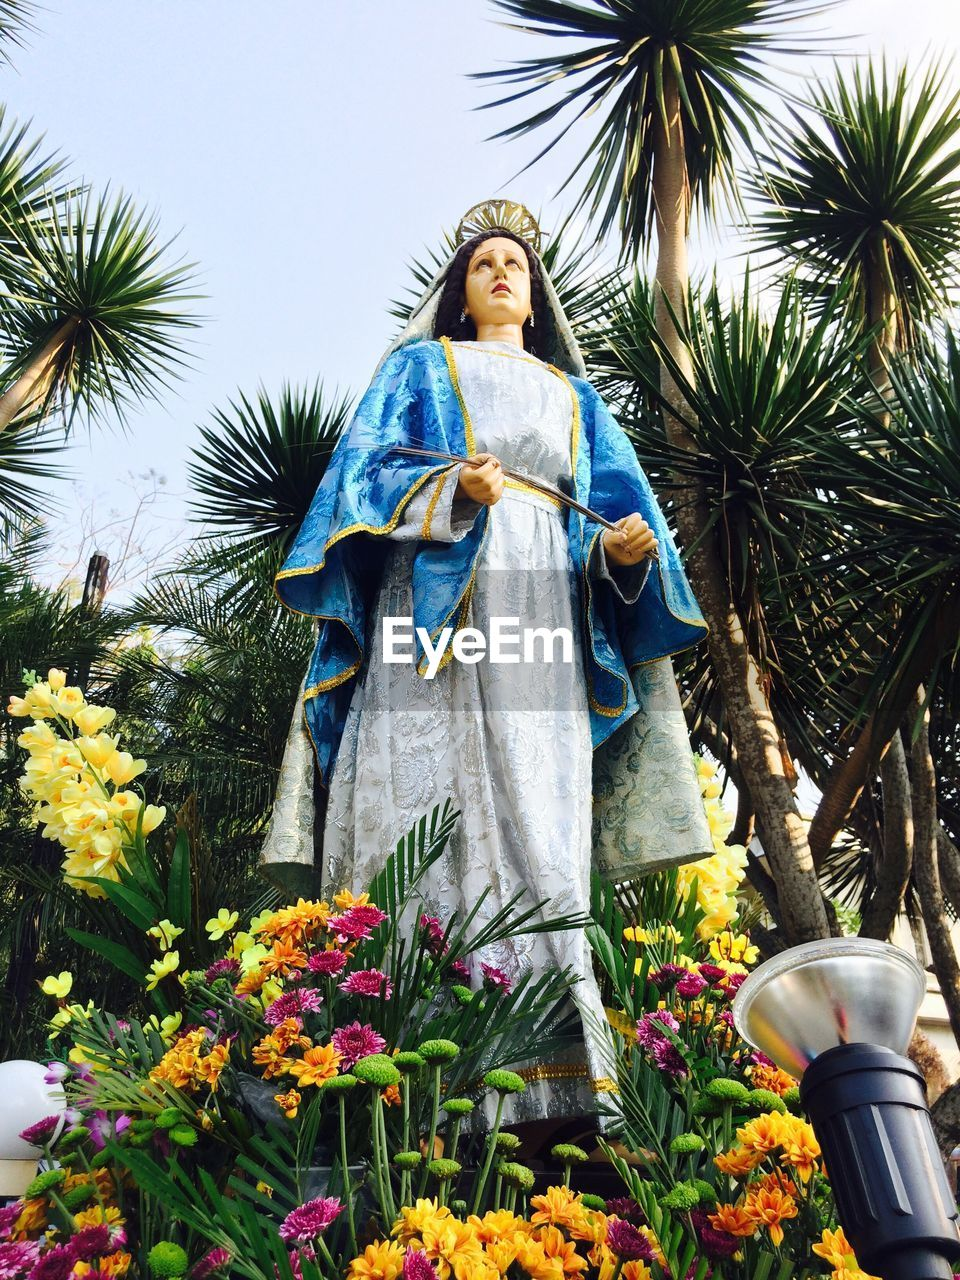 Bouquets around virgin mary statue against trees outside church